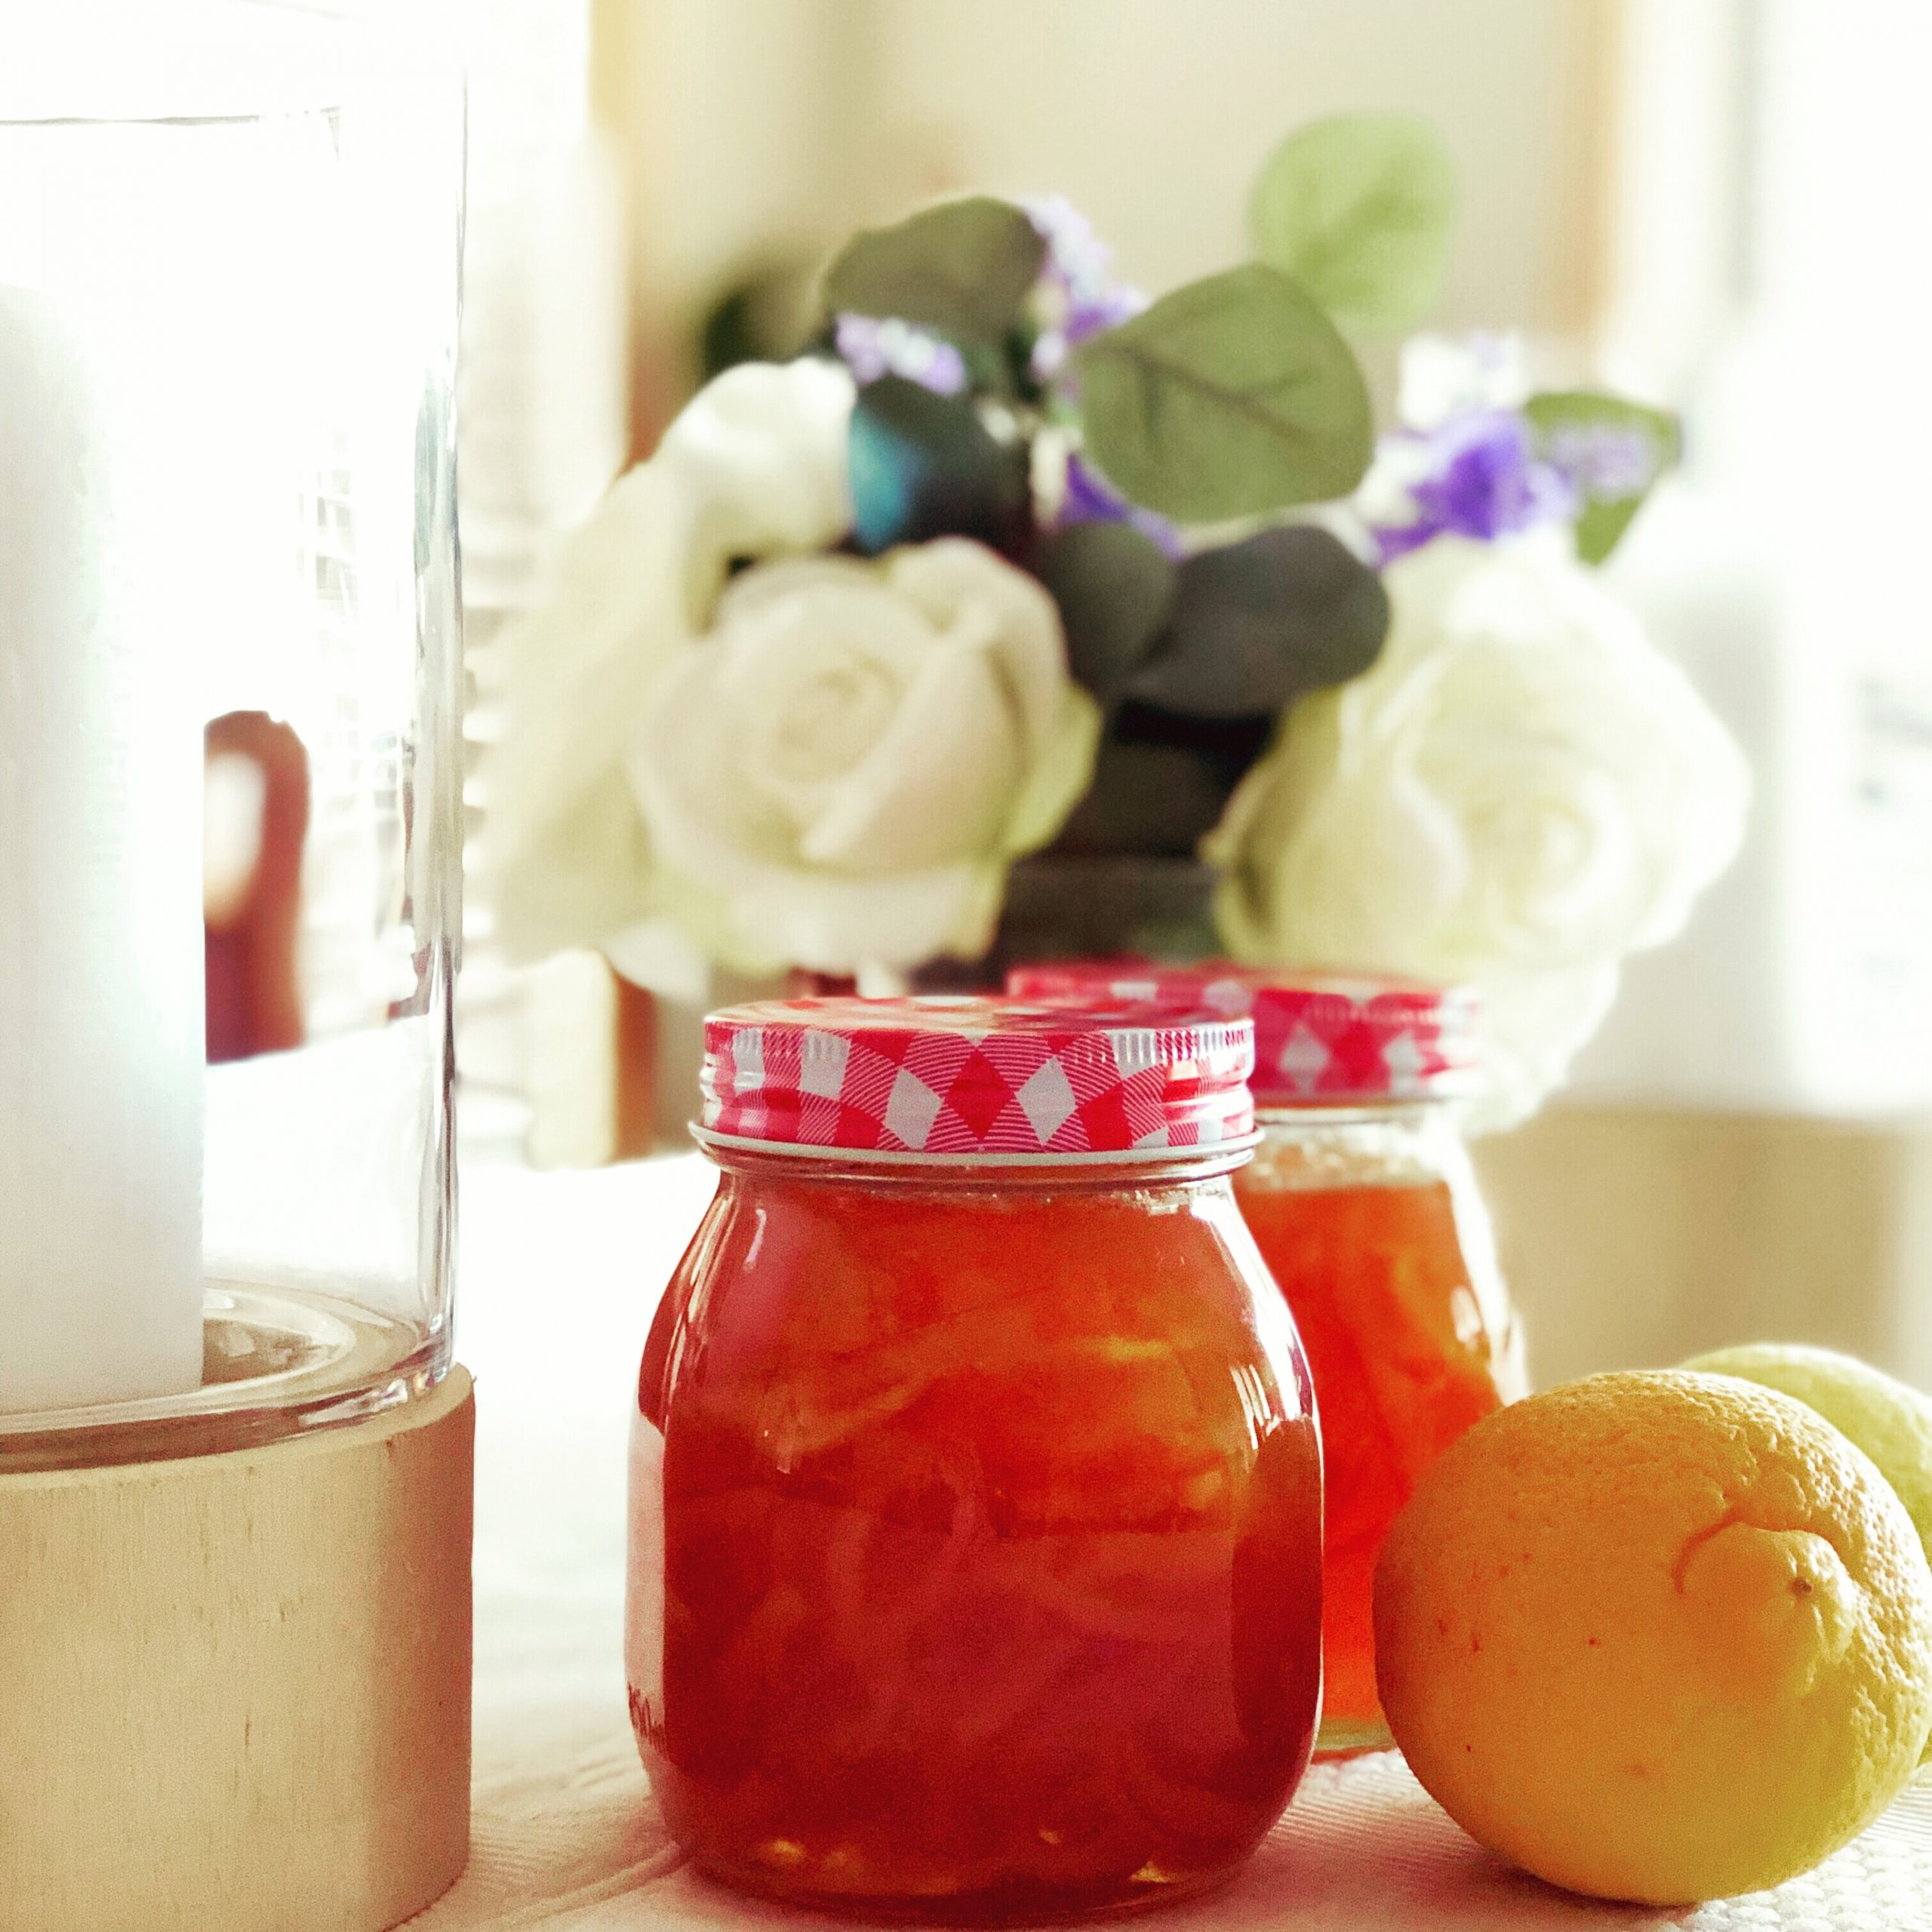 Super Simple Apricot Jam Recipe (With Canning Instructions)